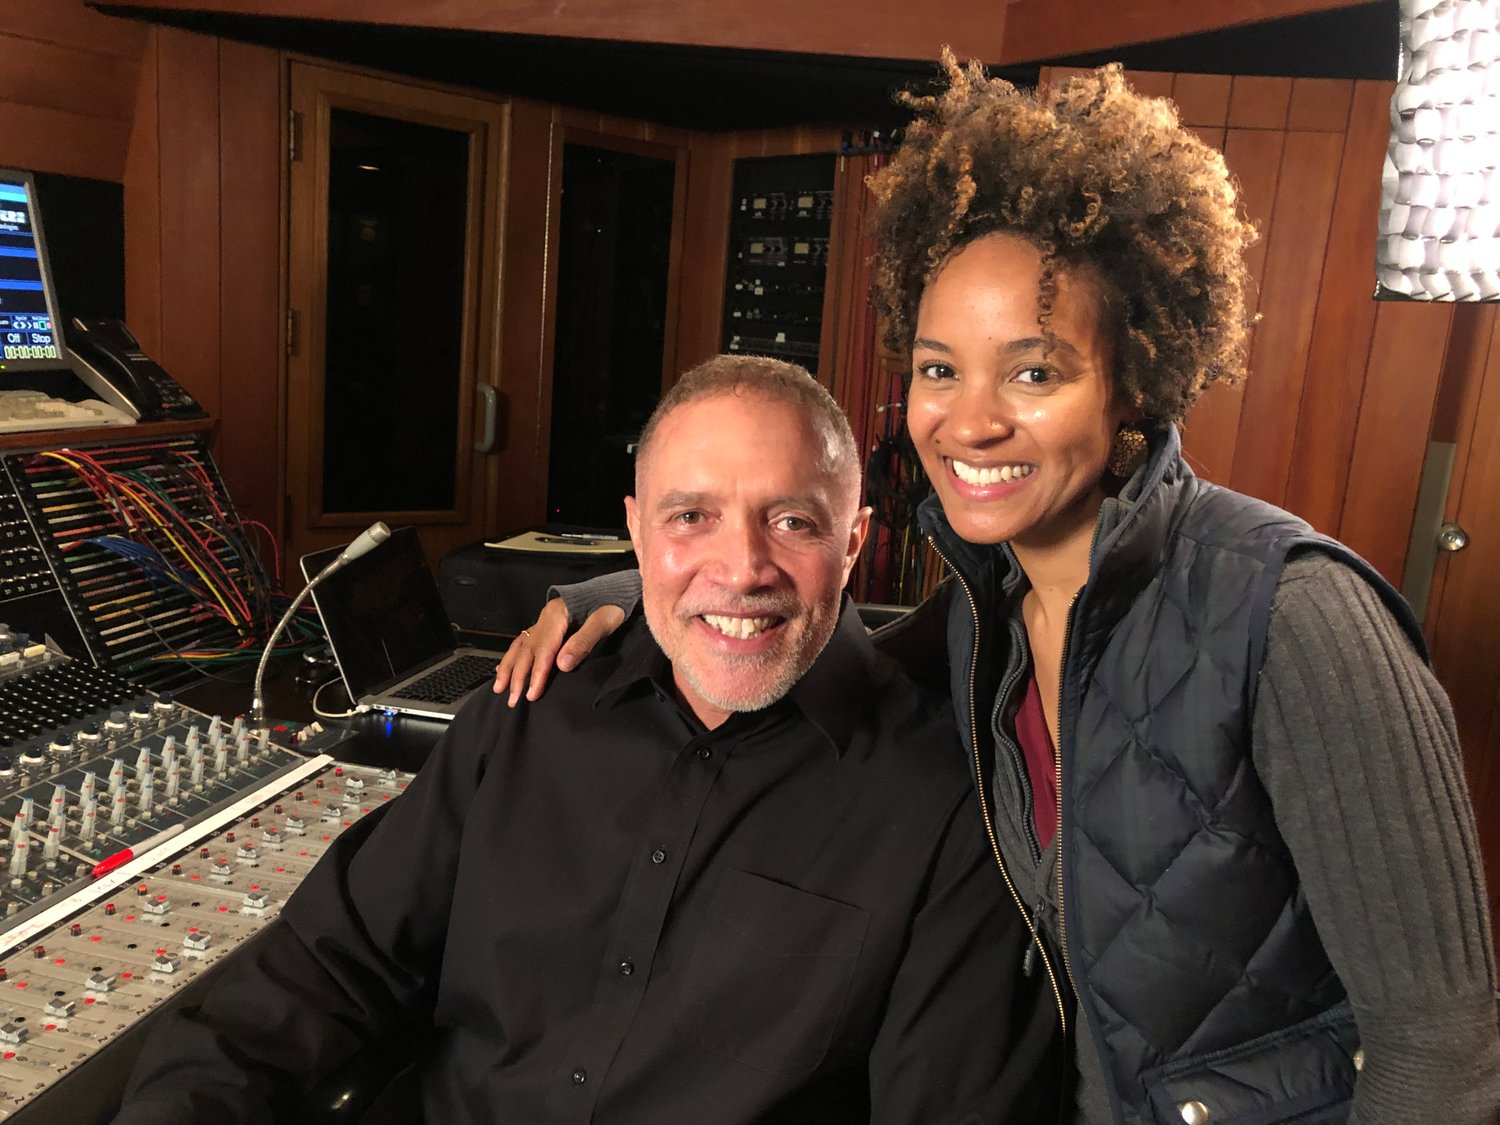 """Us"" composer Michael Abels and Lansing violinist Melissa White."